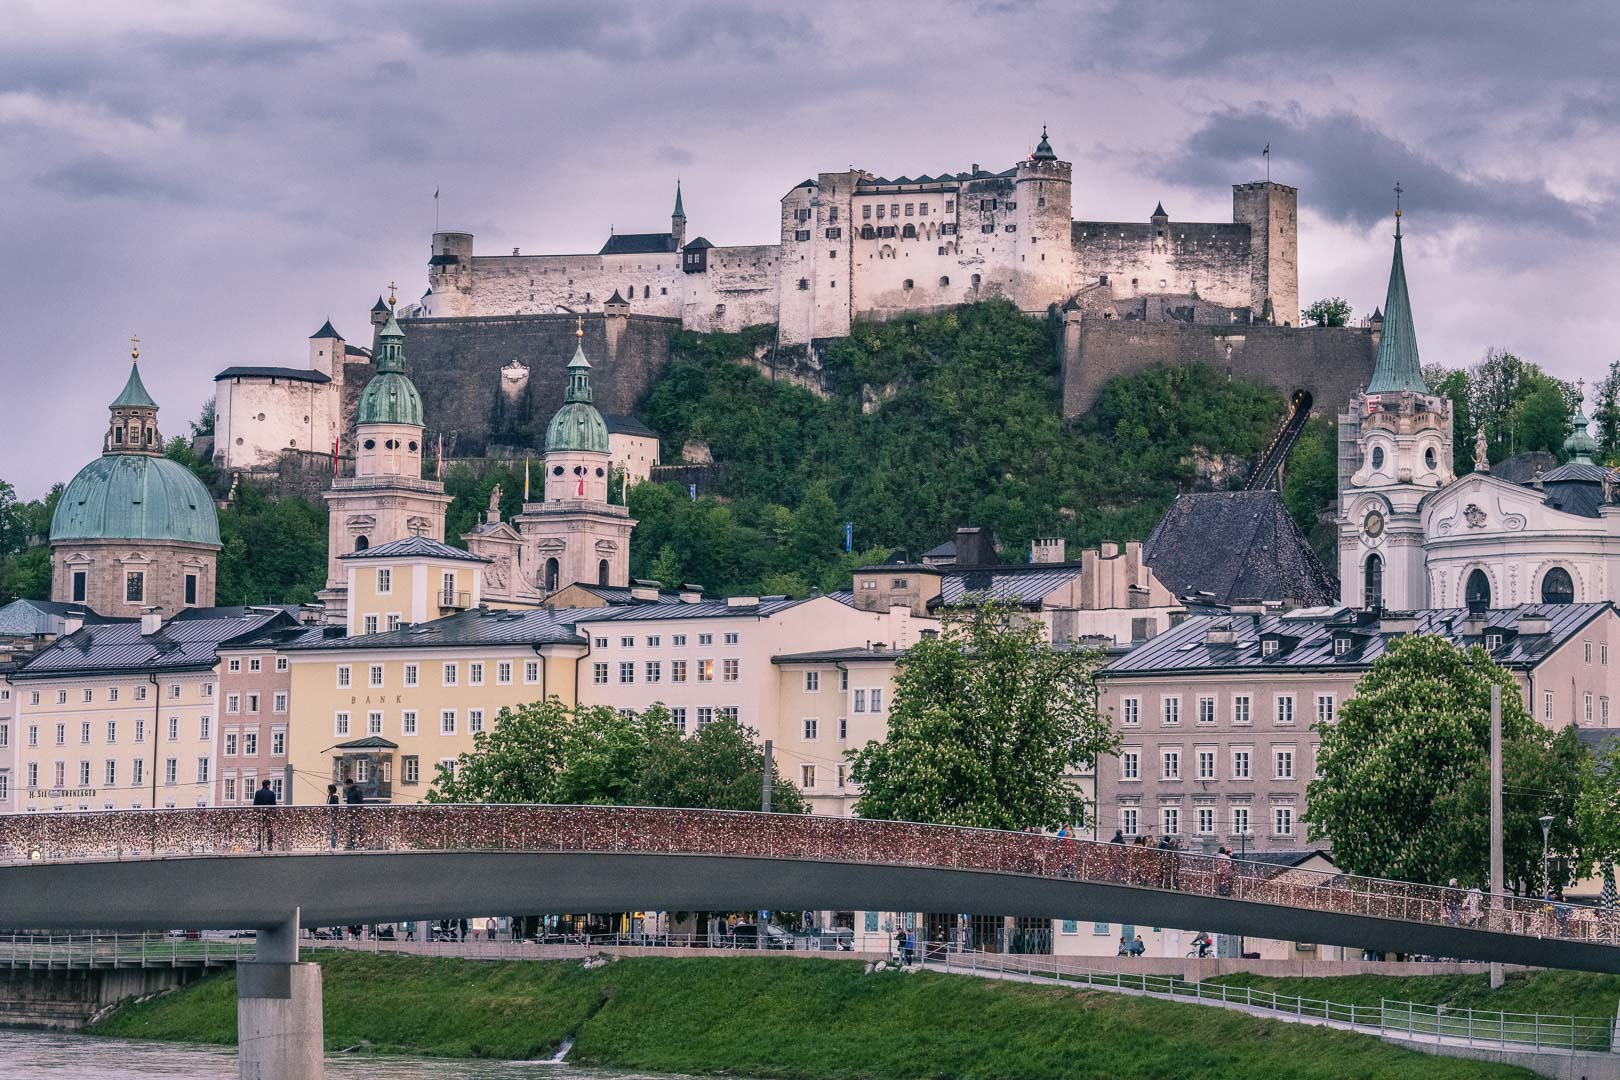 The Love Lock bridge in Front of the Hohensalzburg Fortress and the Salzburg old town